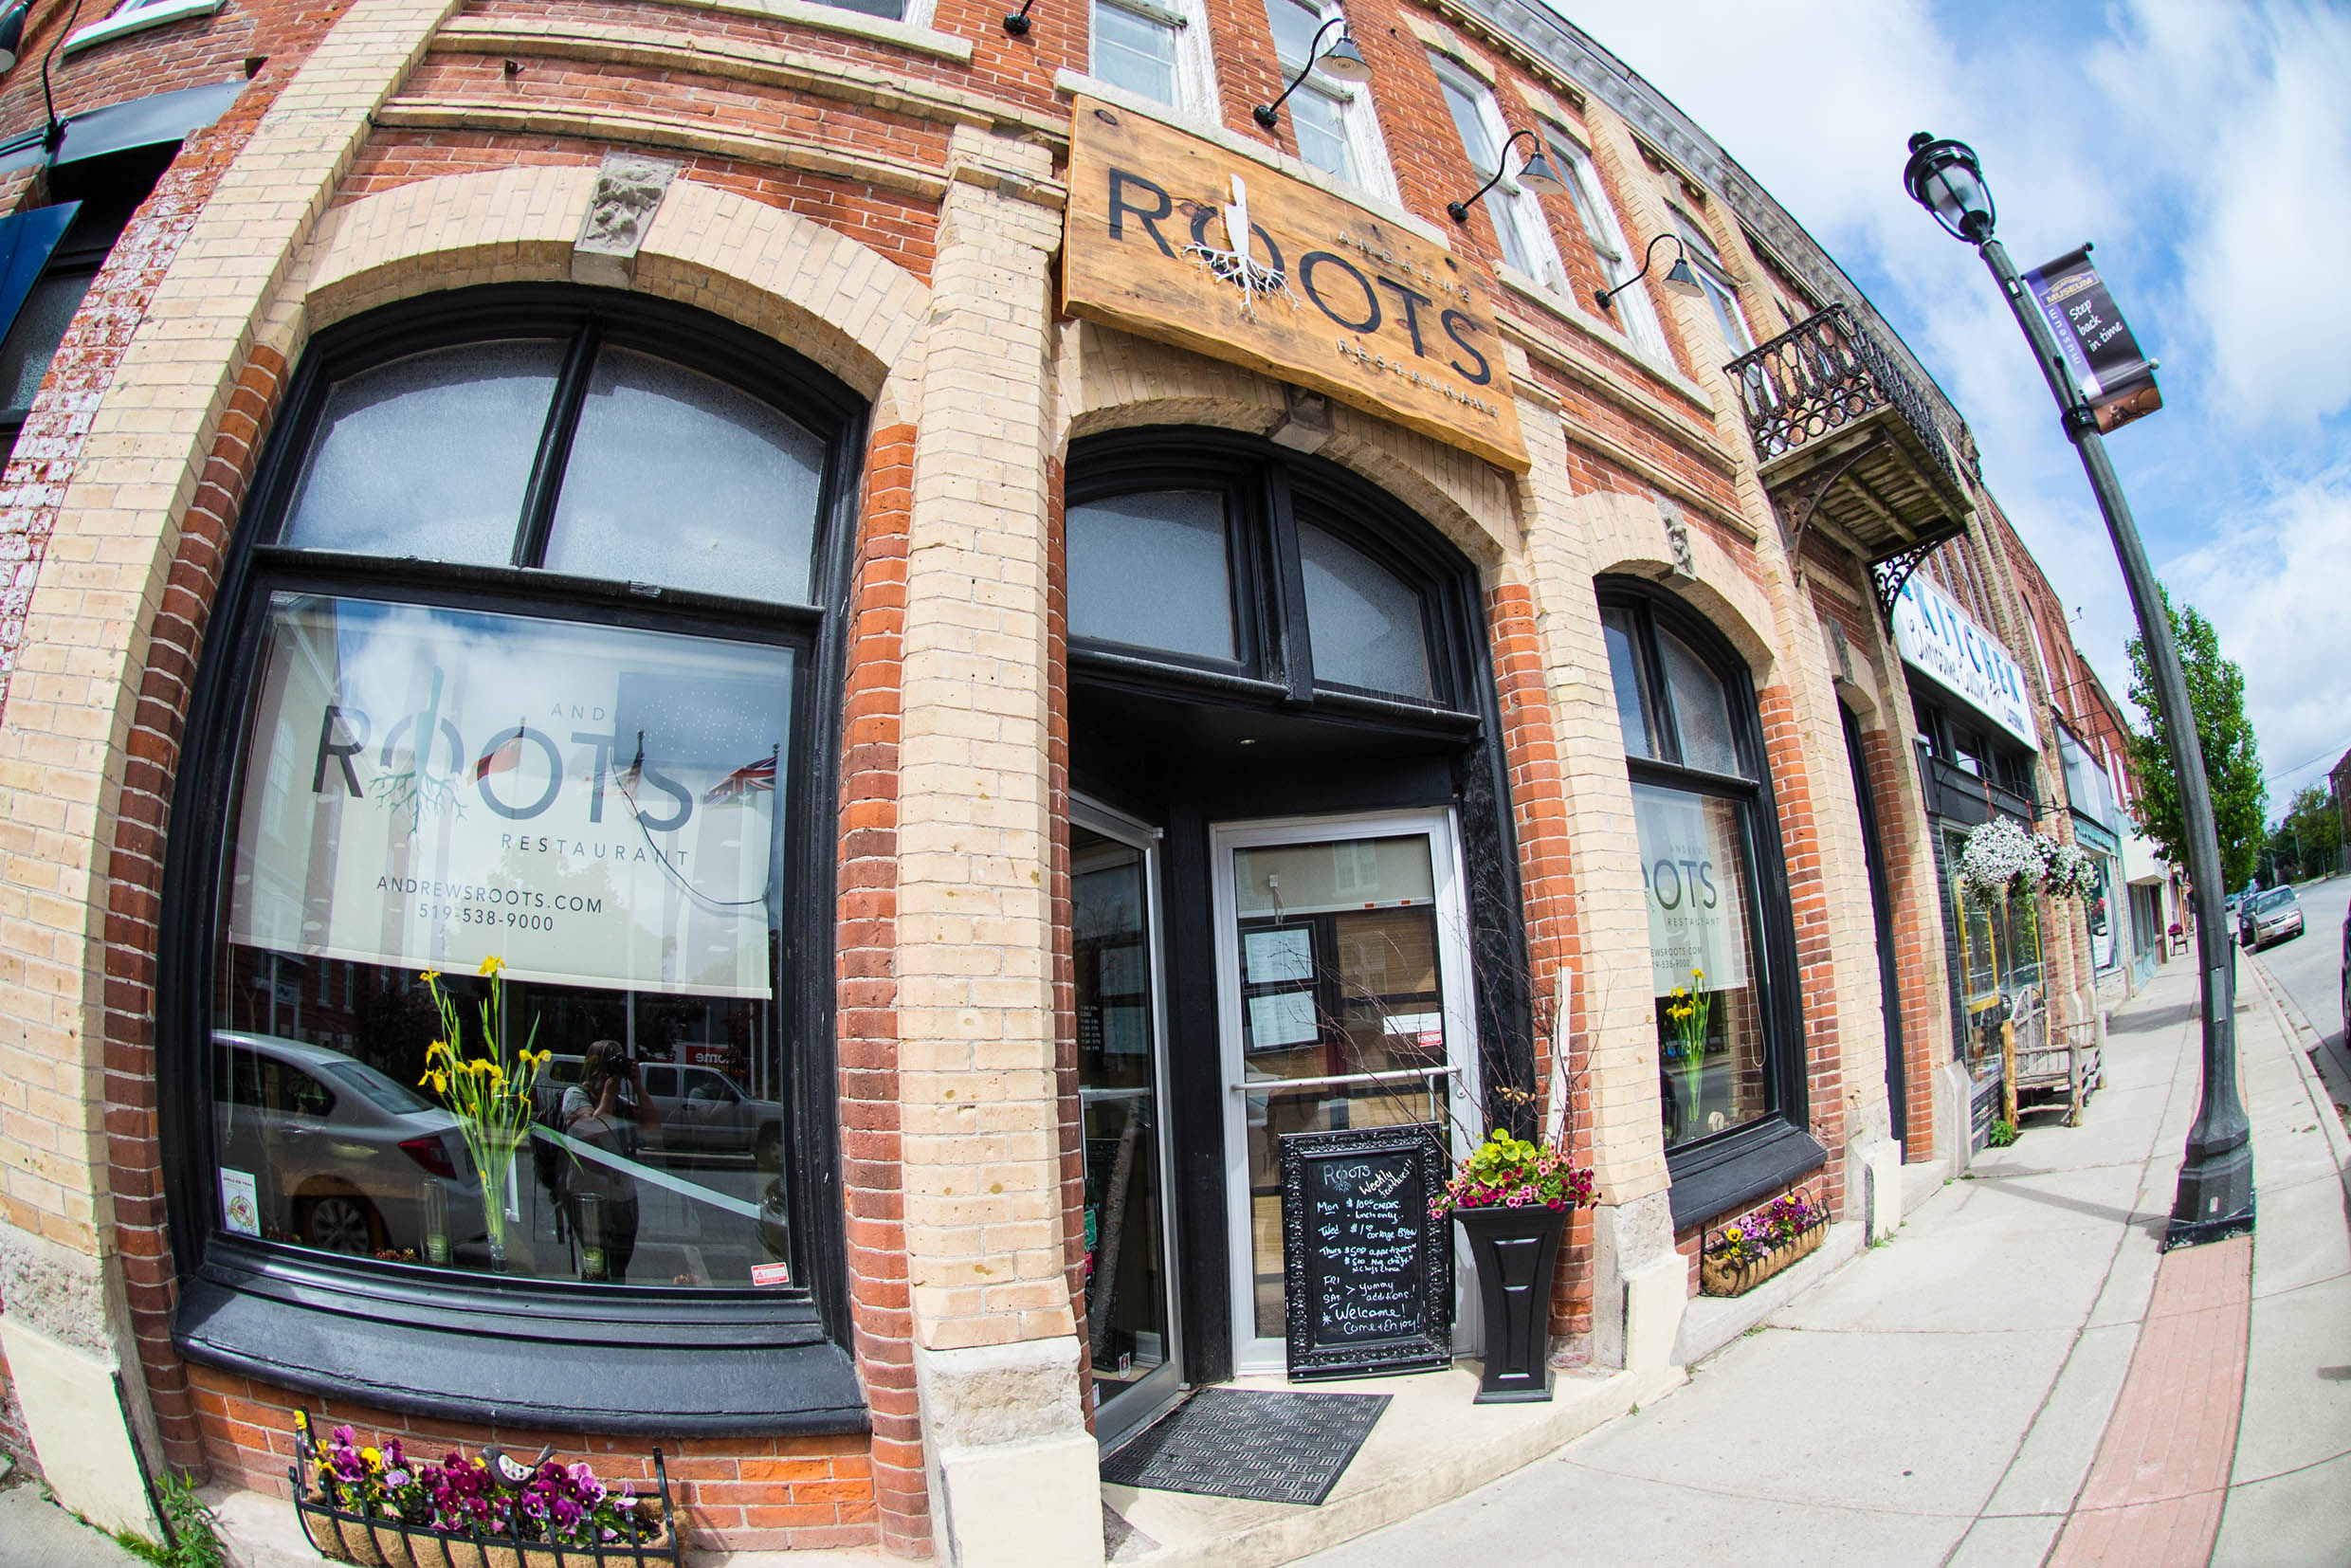 Andrew's Roots is a fantastic (and handsome) restaurant in lovely Meaford, Ontario.  PHOTO COURTESY VISITGREY.CA